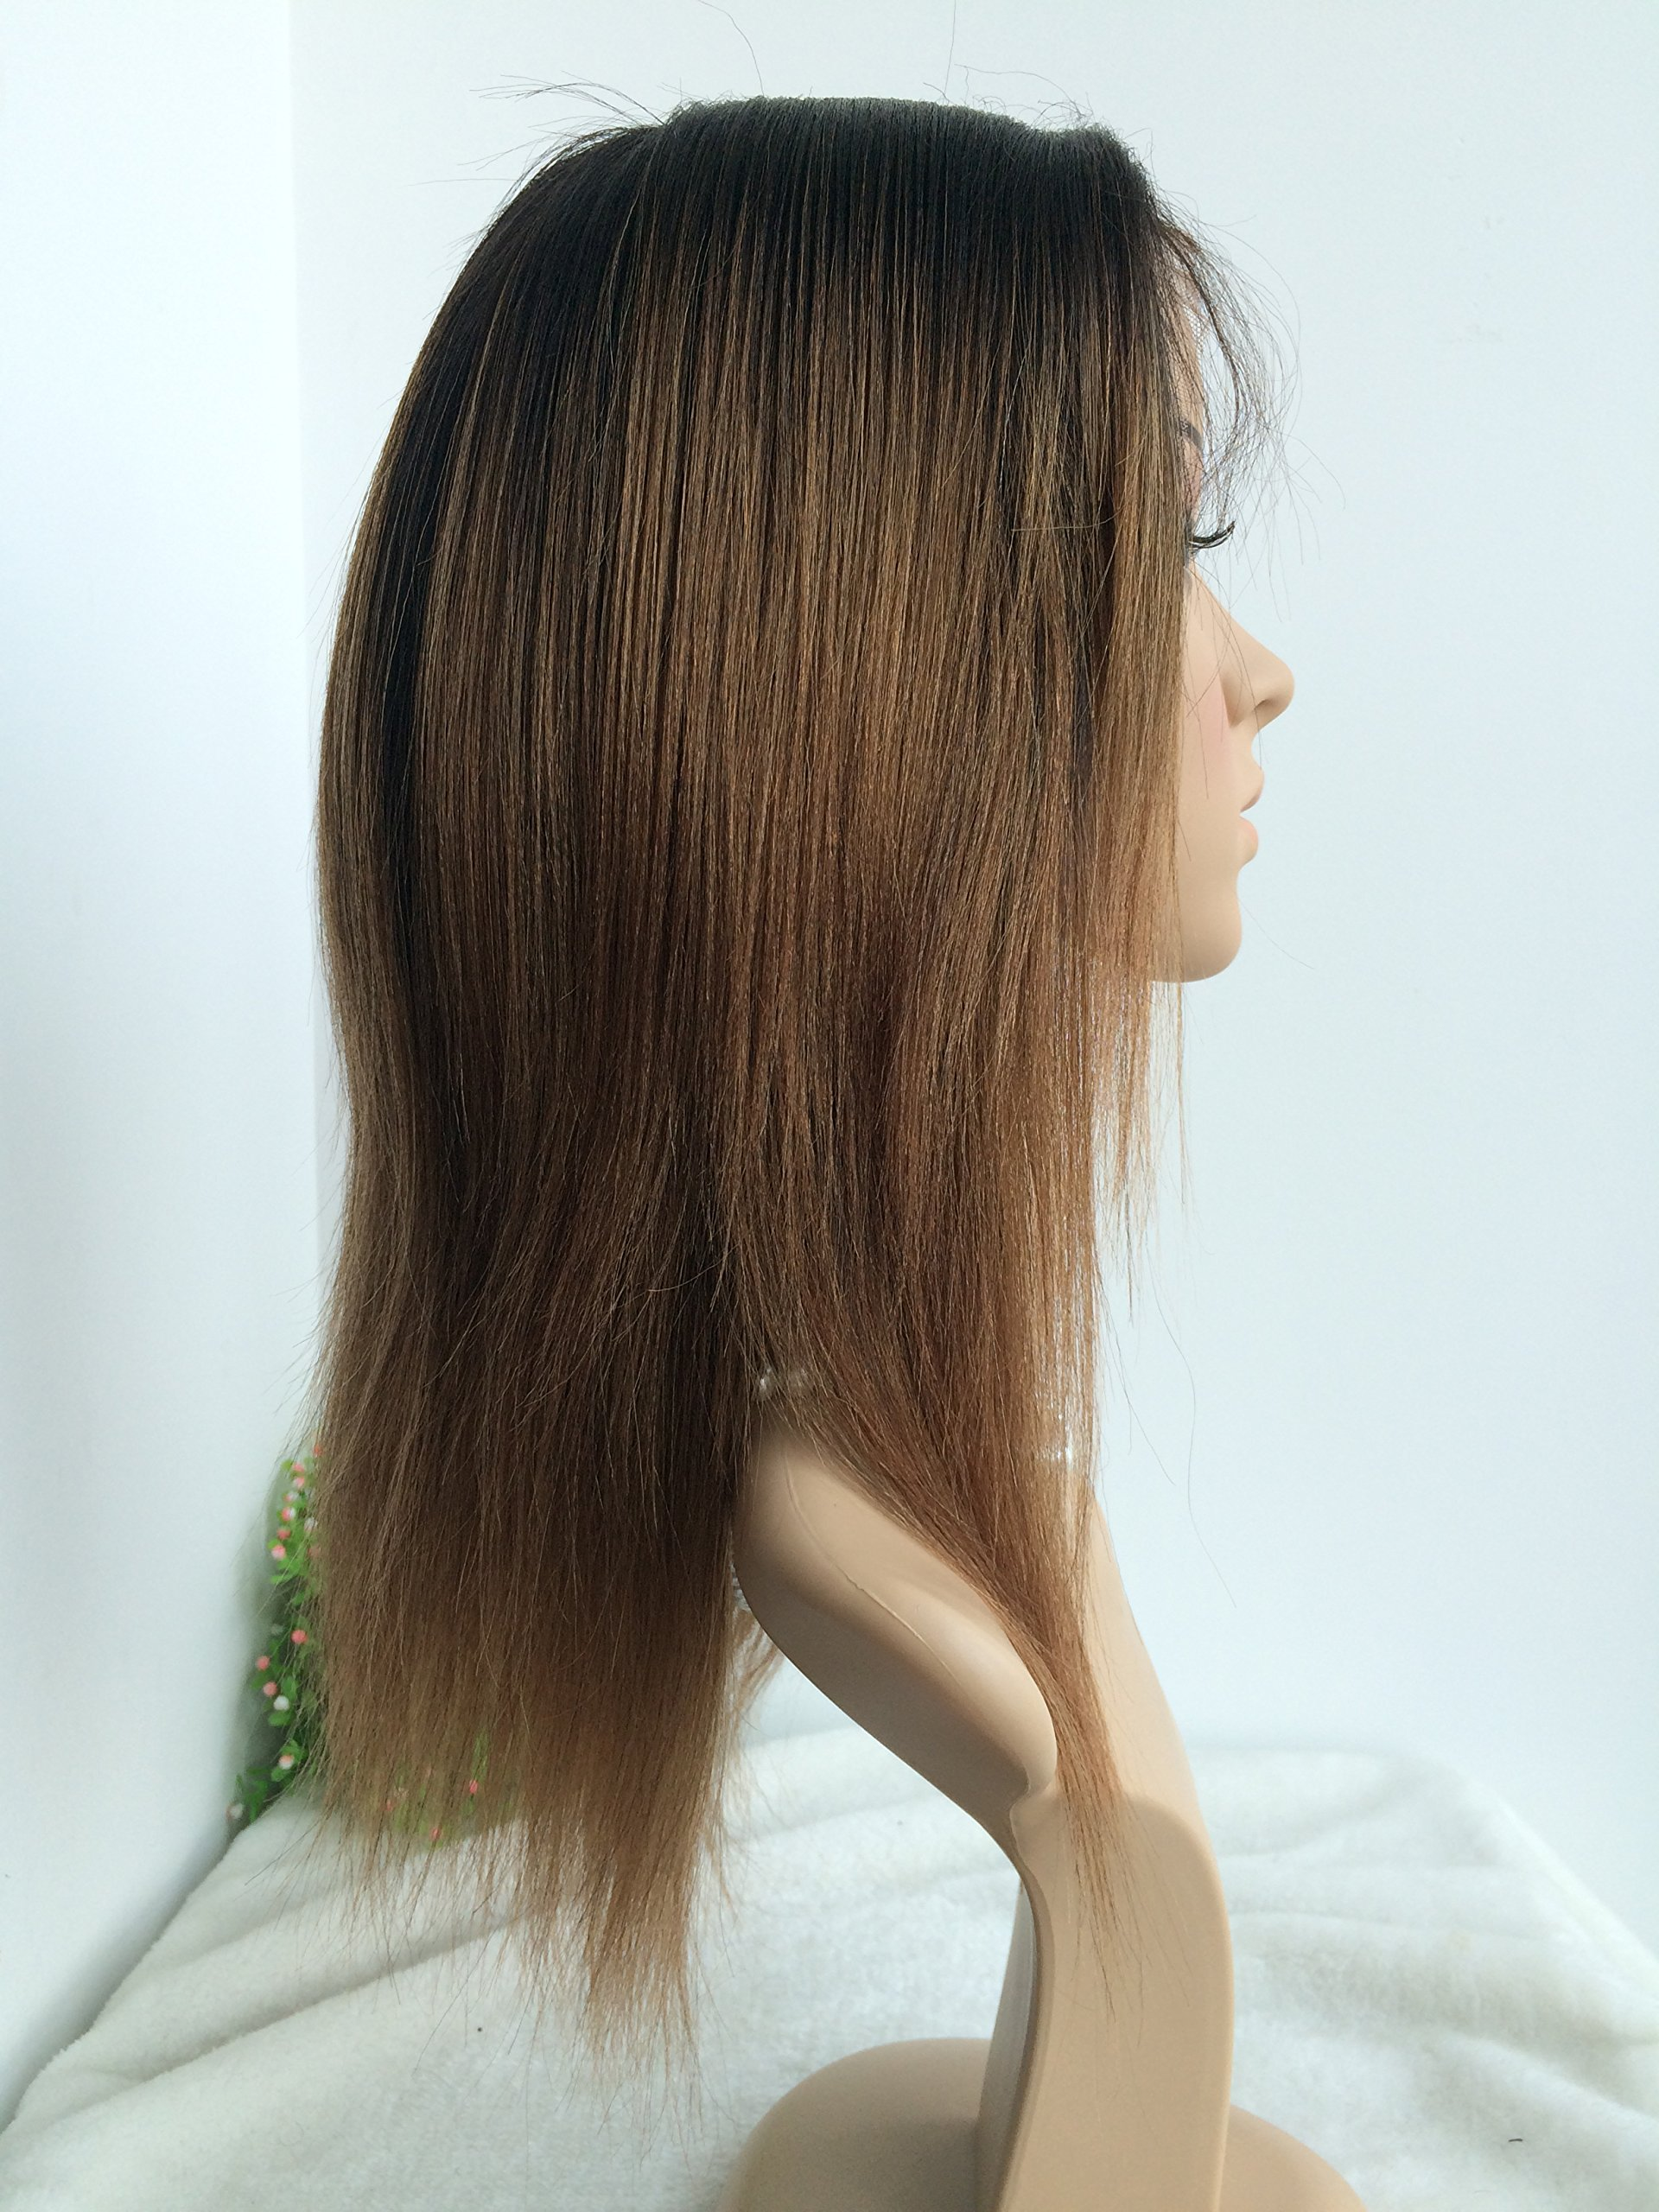 CHINESE VIRGIN 10 INCH,LIGHT YAKI,FULL LACE WIGS SILK TOP,BLEACHED KNOTS--hot sale product!!! by April silk top wigs (Image #4)